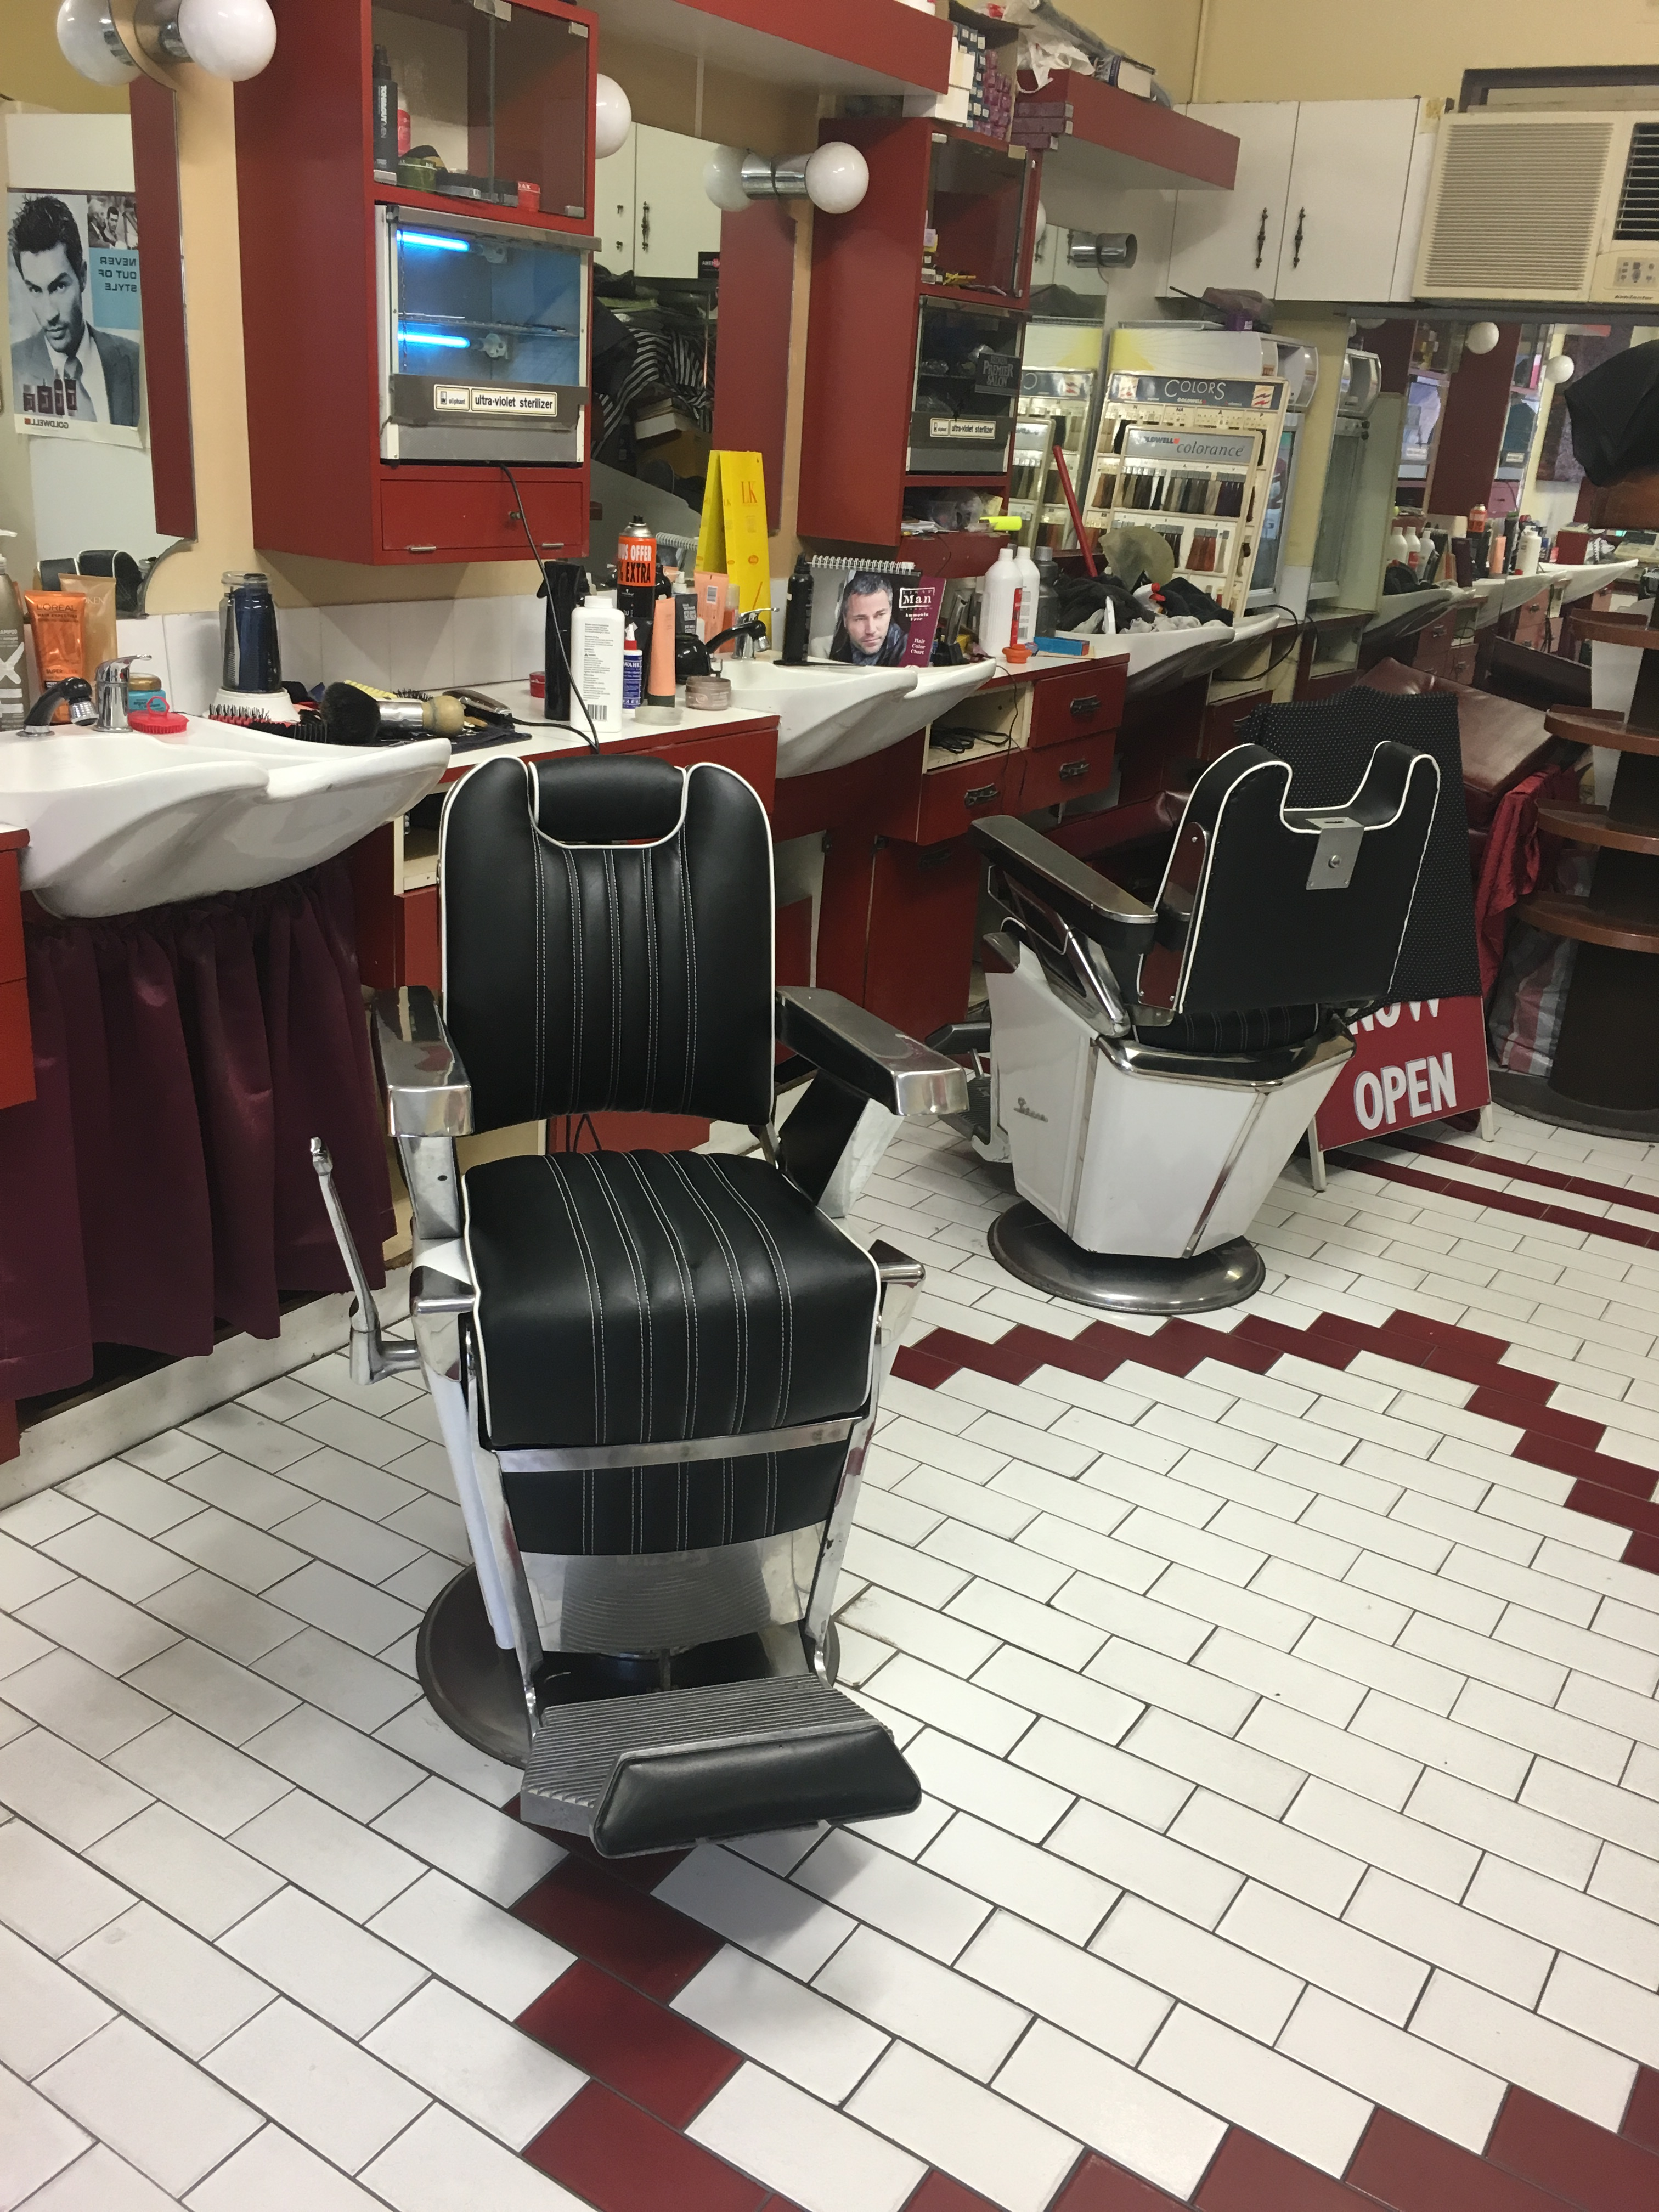 Franco s Barber shop